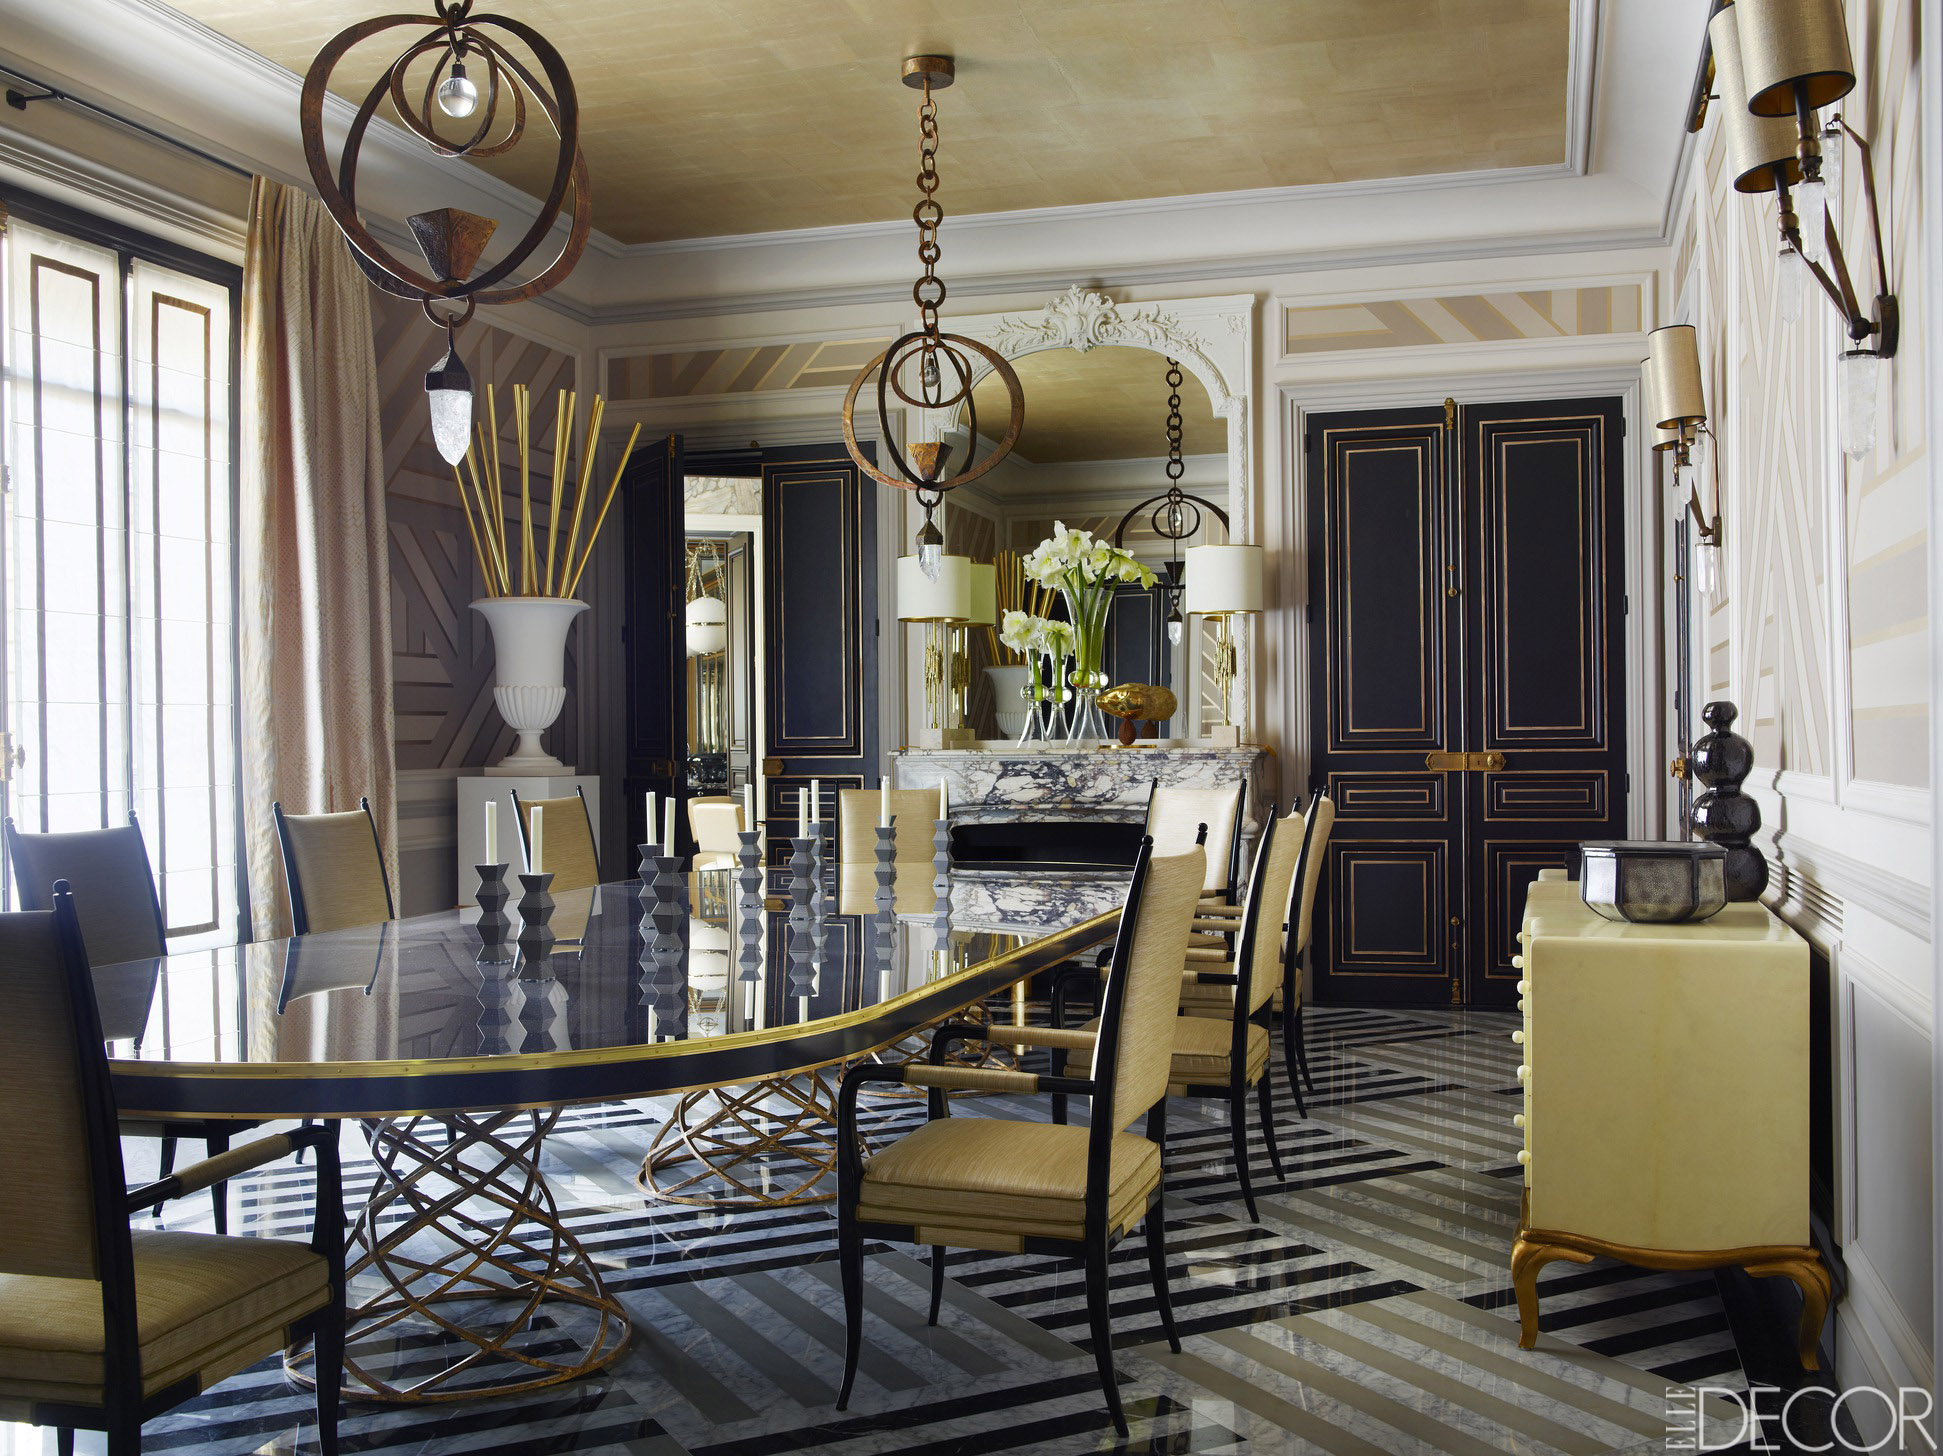 10-Dining-Room-Ideas-to-Inspire-Yourself-by-Elle-Décor-2 Dining Room Ideas 10 Dining Room Ideas to Inspire Yourself by Elle Décor 10 Dining Room Ideas to Inspire Yourself by Elle D  cor 2